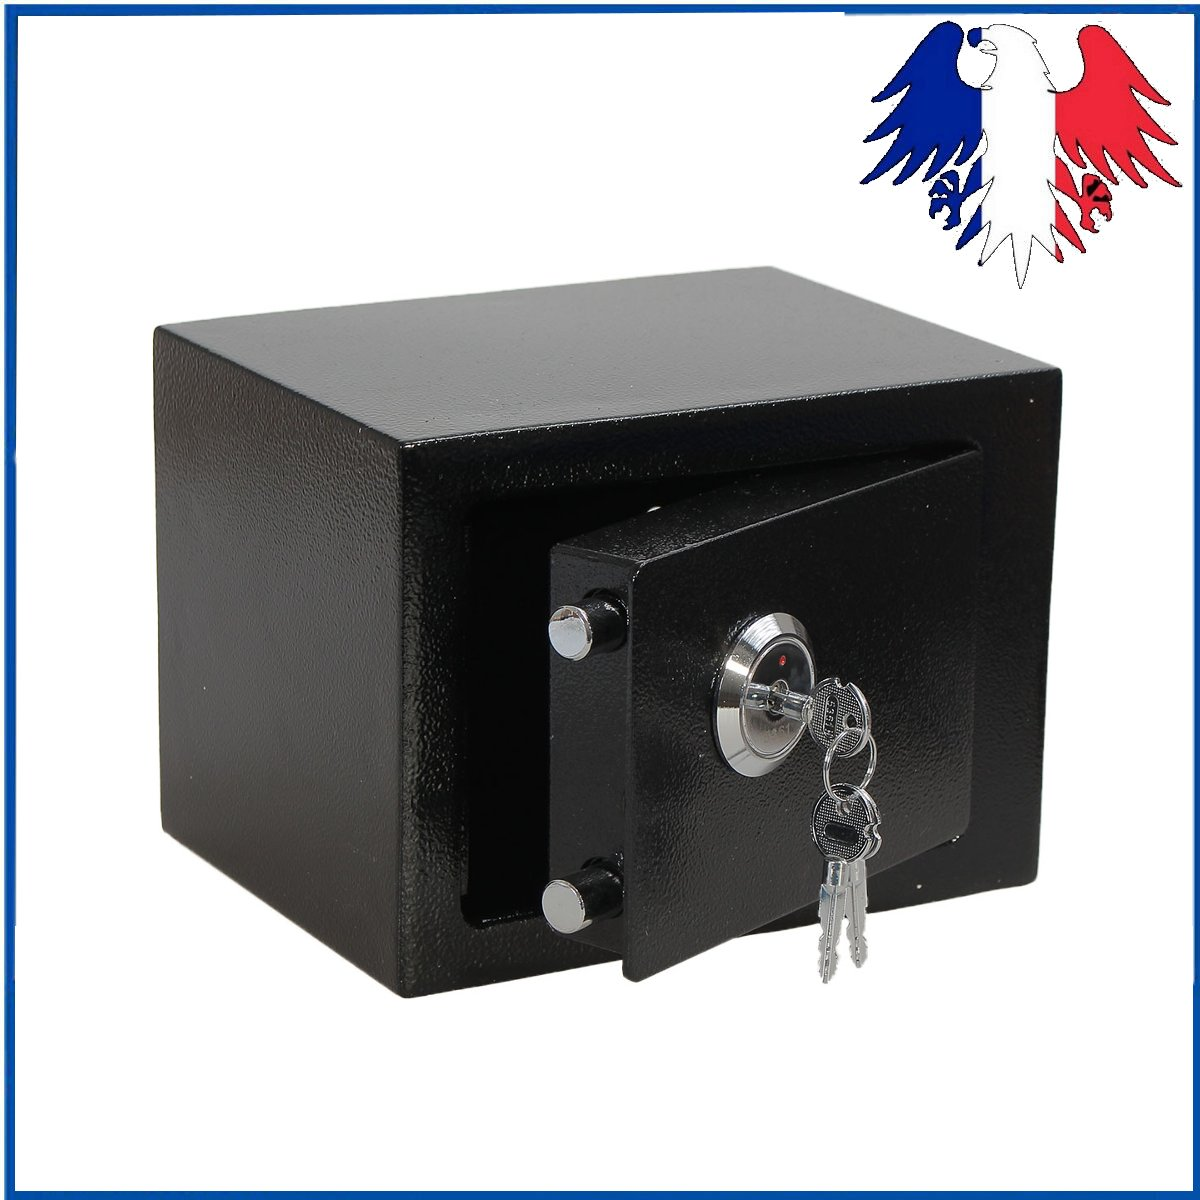 Durable Quality Strong Iron Steel Black Key Operated  Security Money Cash Safe Box Home Office House New Arrival Free Shipping